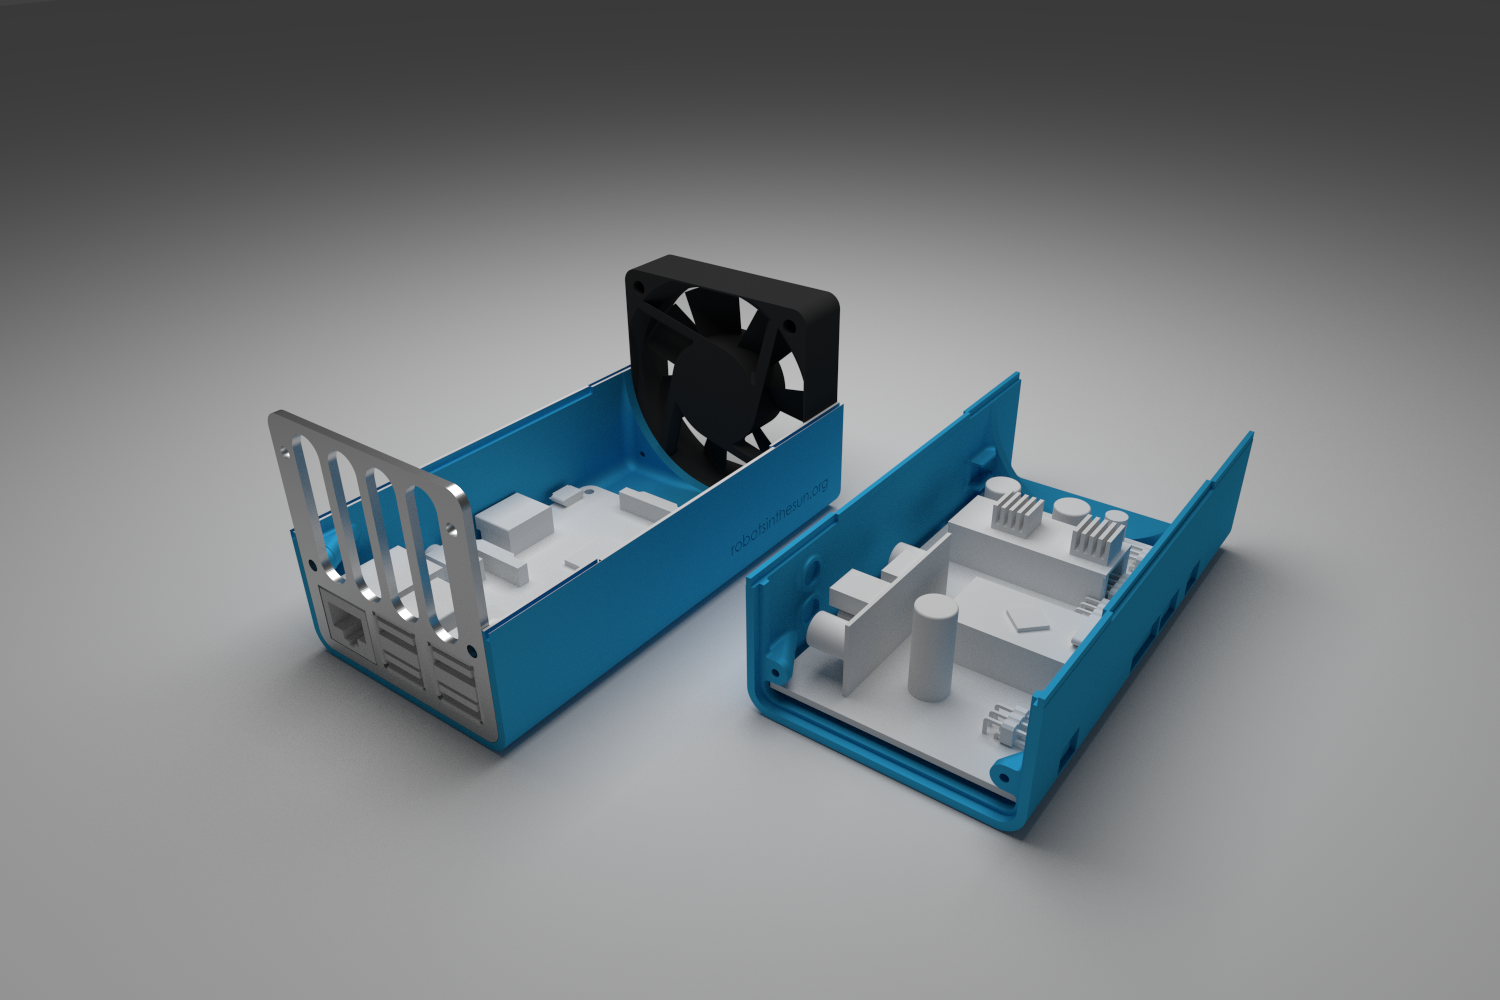 Rendered image showing a 3d printed box which carries electronic boards.